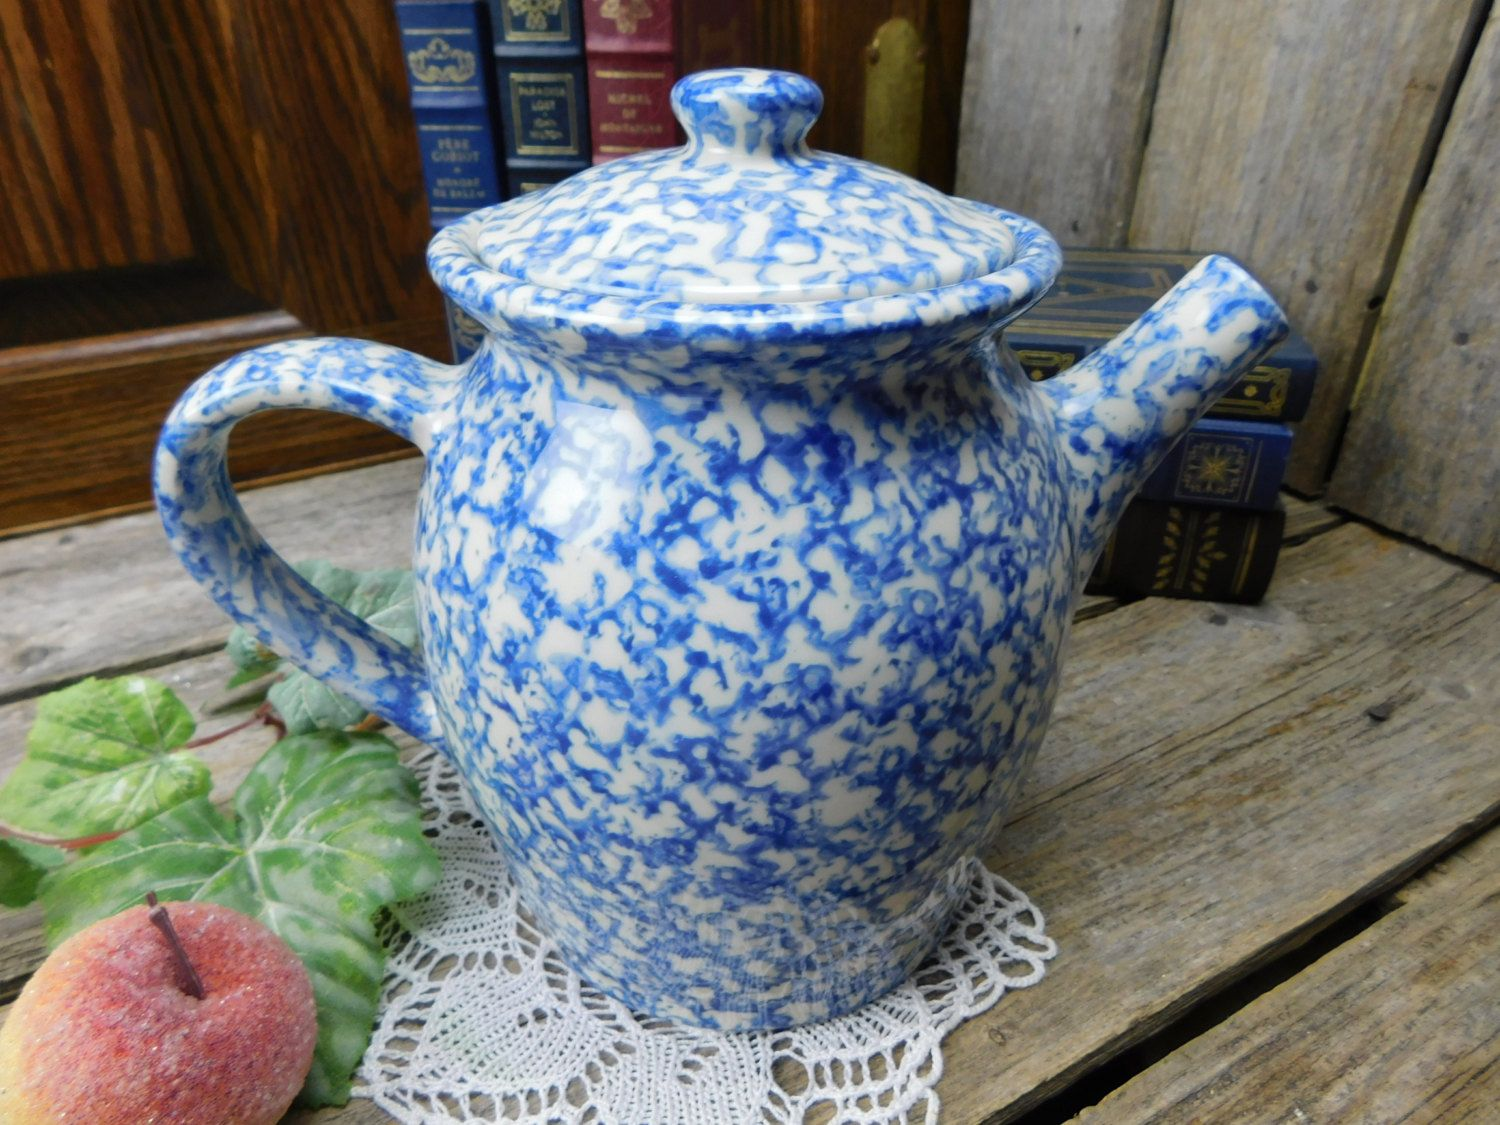 Vintage Henn Pottery Country Home Collections Blue Spongeware Teapot By Allthatsvintage56 On Etsy Pottery Patterns Pottery Tea Pots